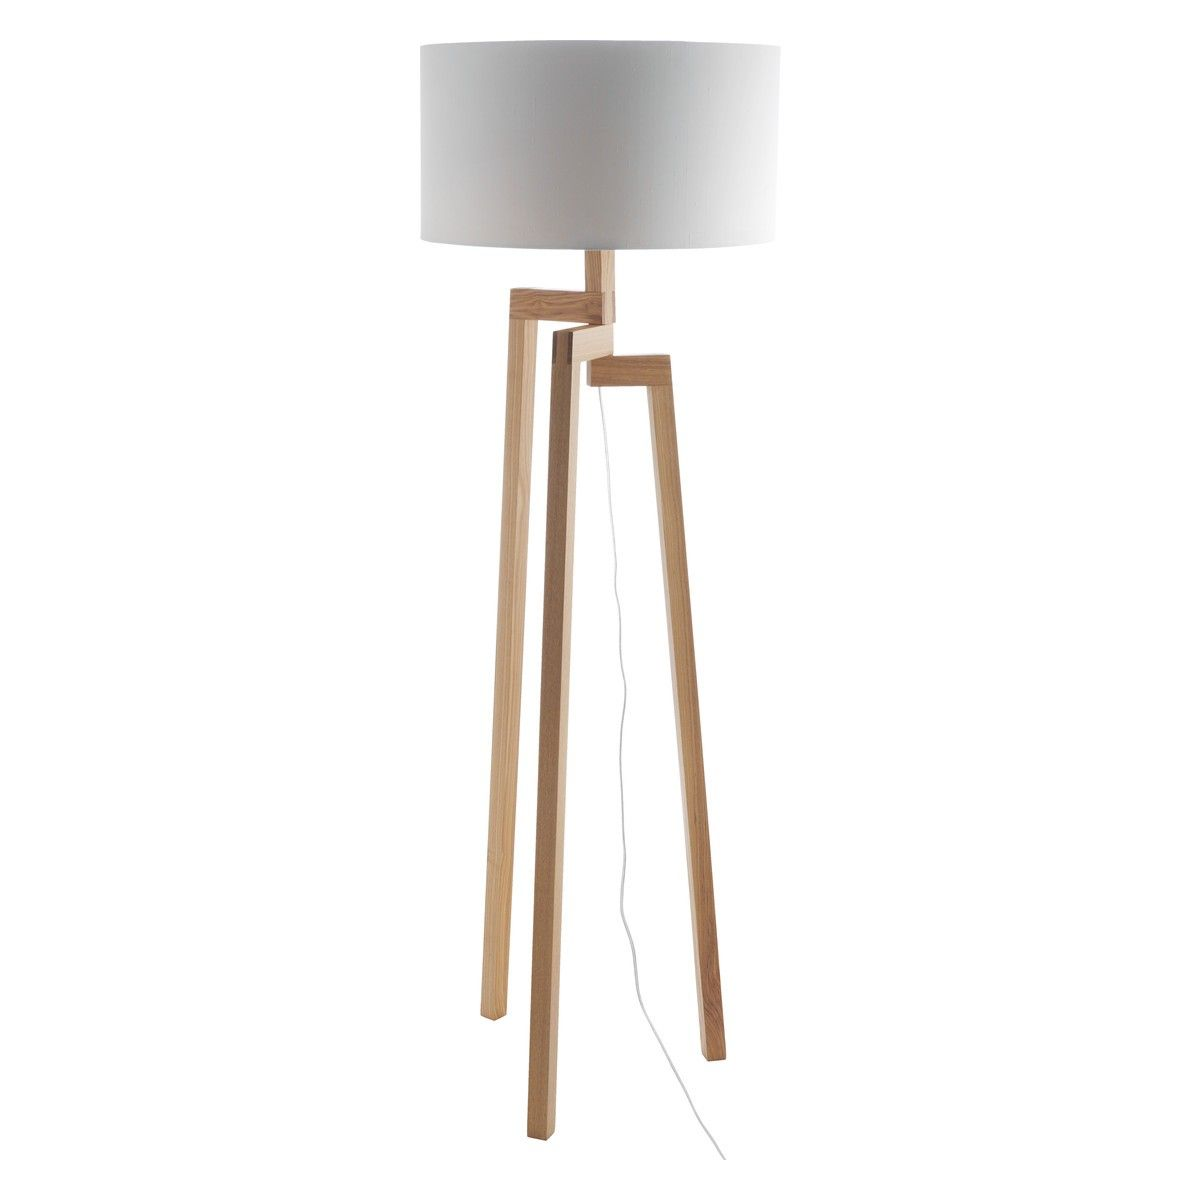 Dylan Wooden Floor Lamp With White Shade House